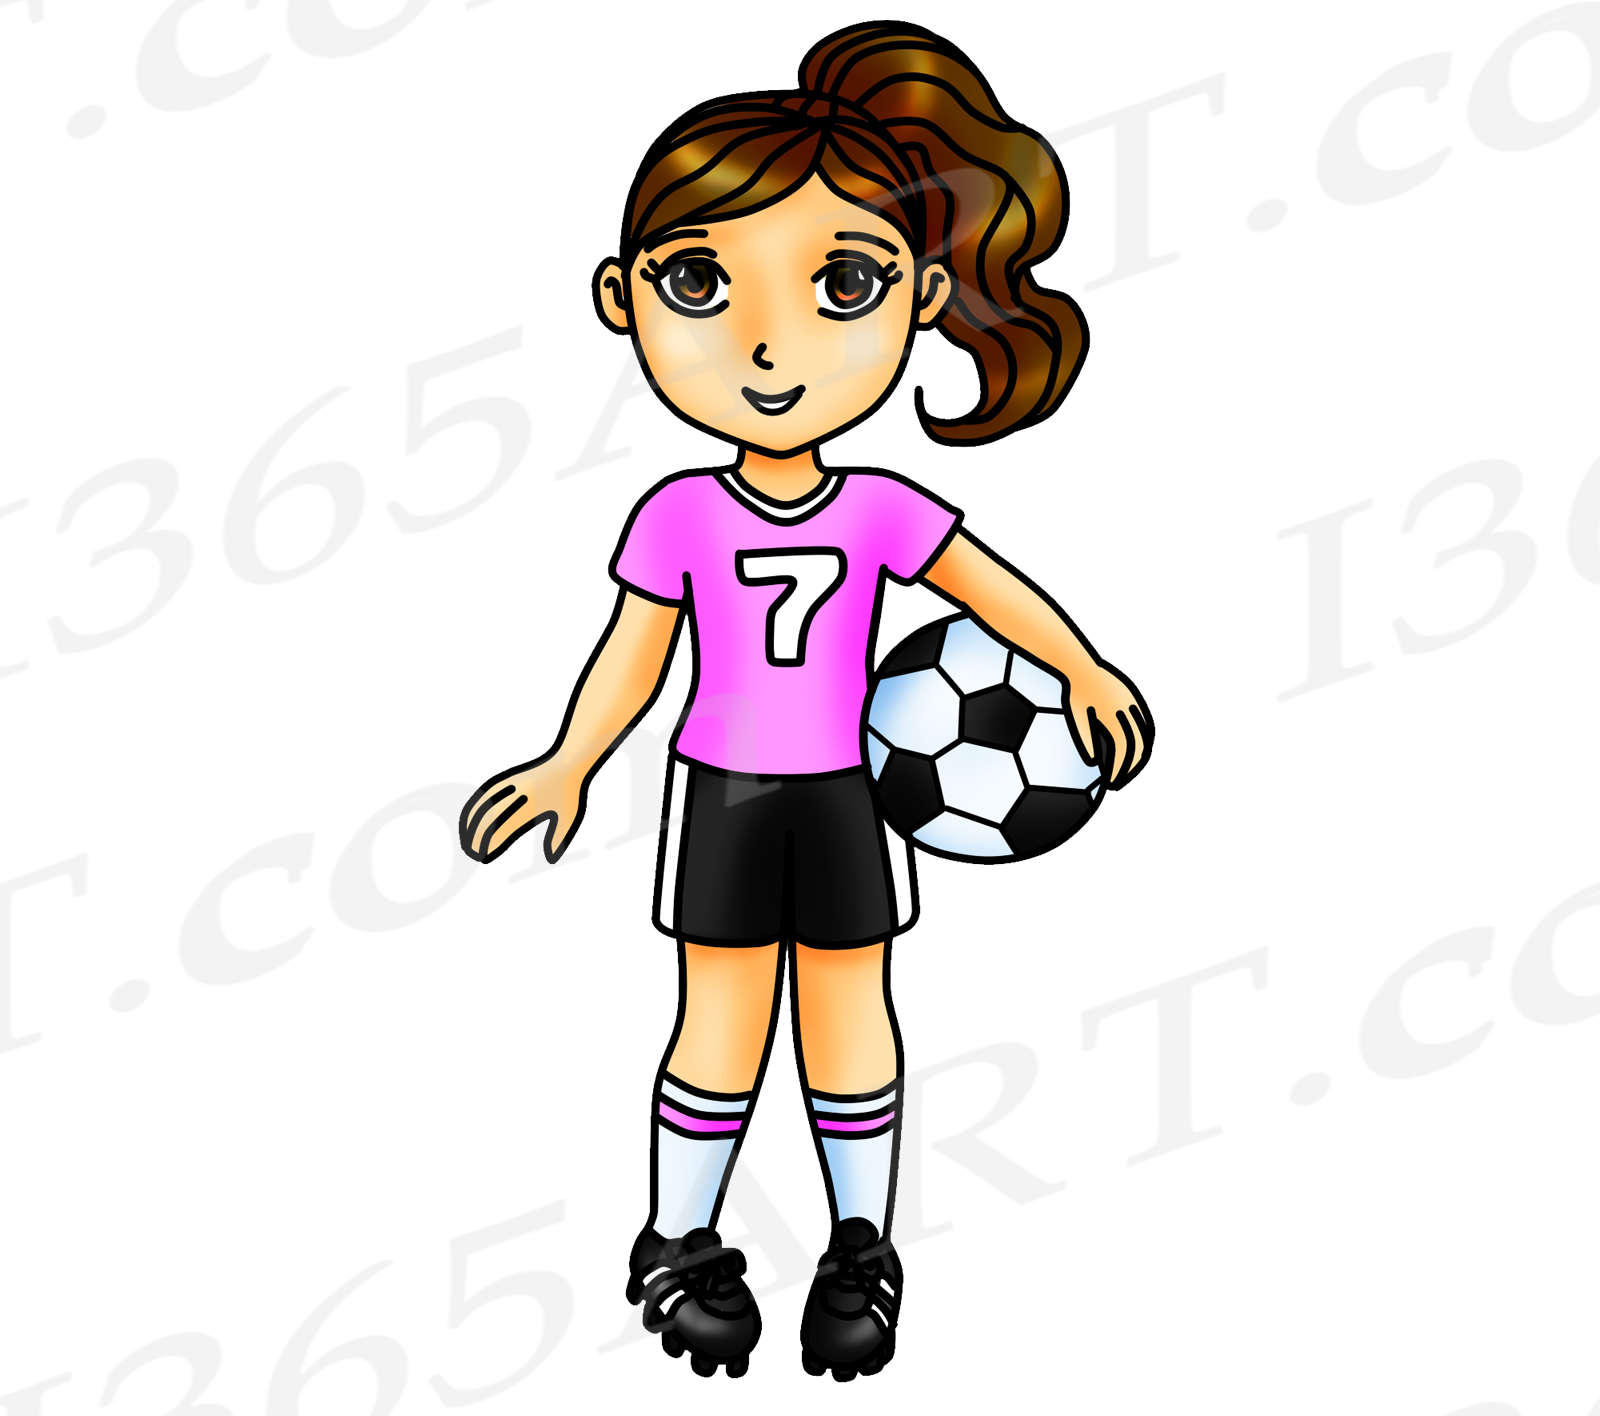 Clipart soccer girl banner royalty free library Soccer Clipart, Pink Soccer Girl Clipart, Sports Clip Art, Pink Team, World  Cup, Olympics, Soccer Team, Planner Stickers, African American banner royalty free library